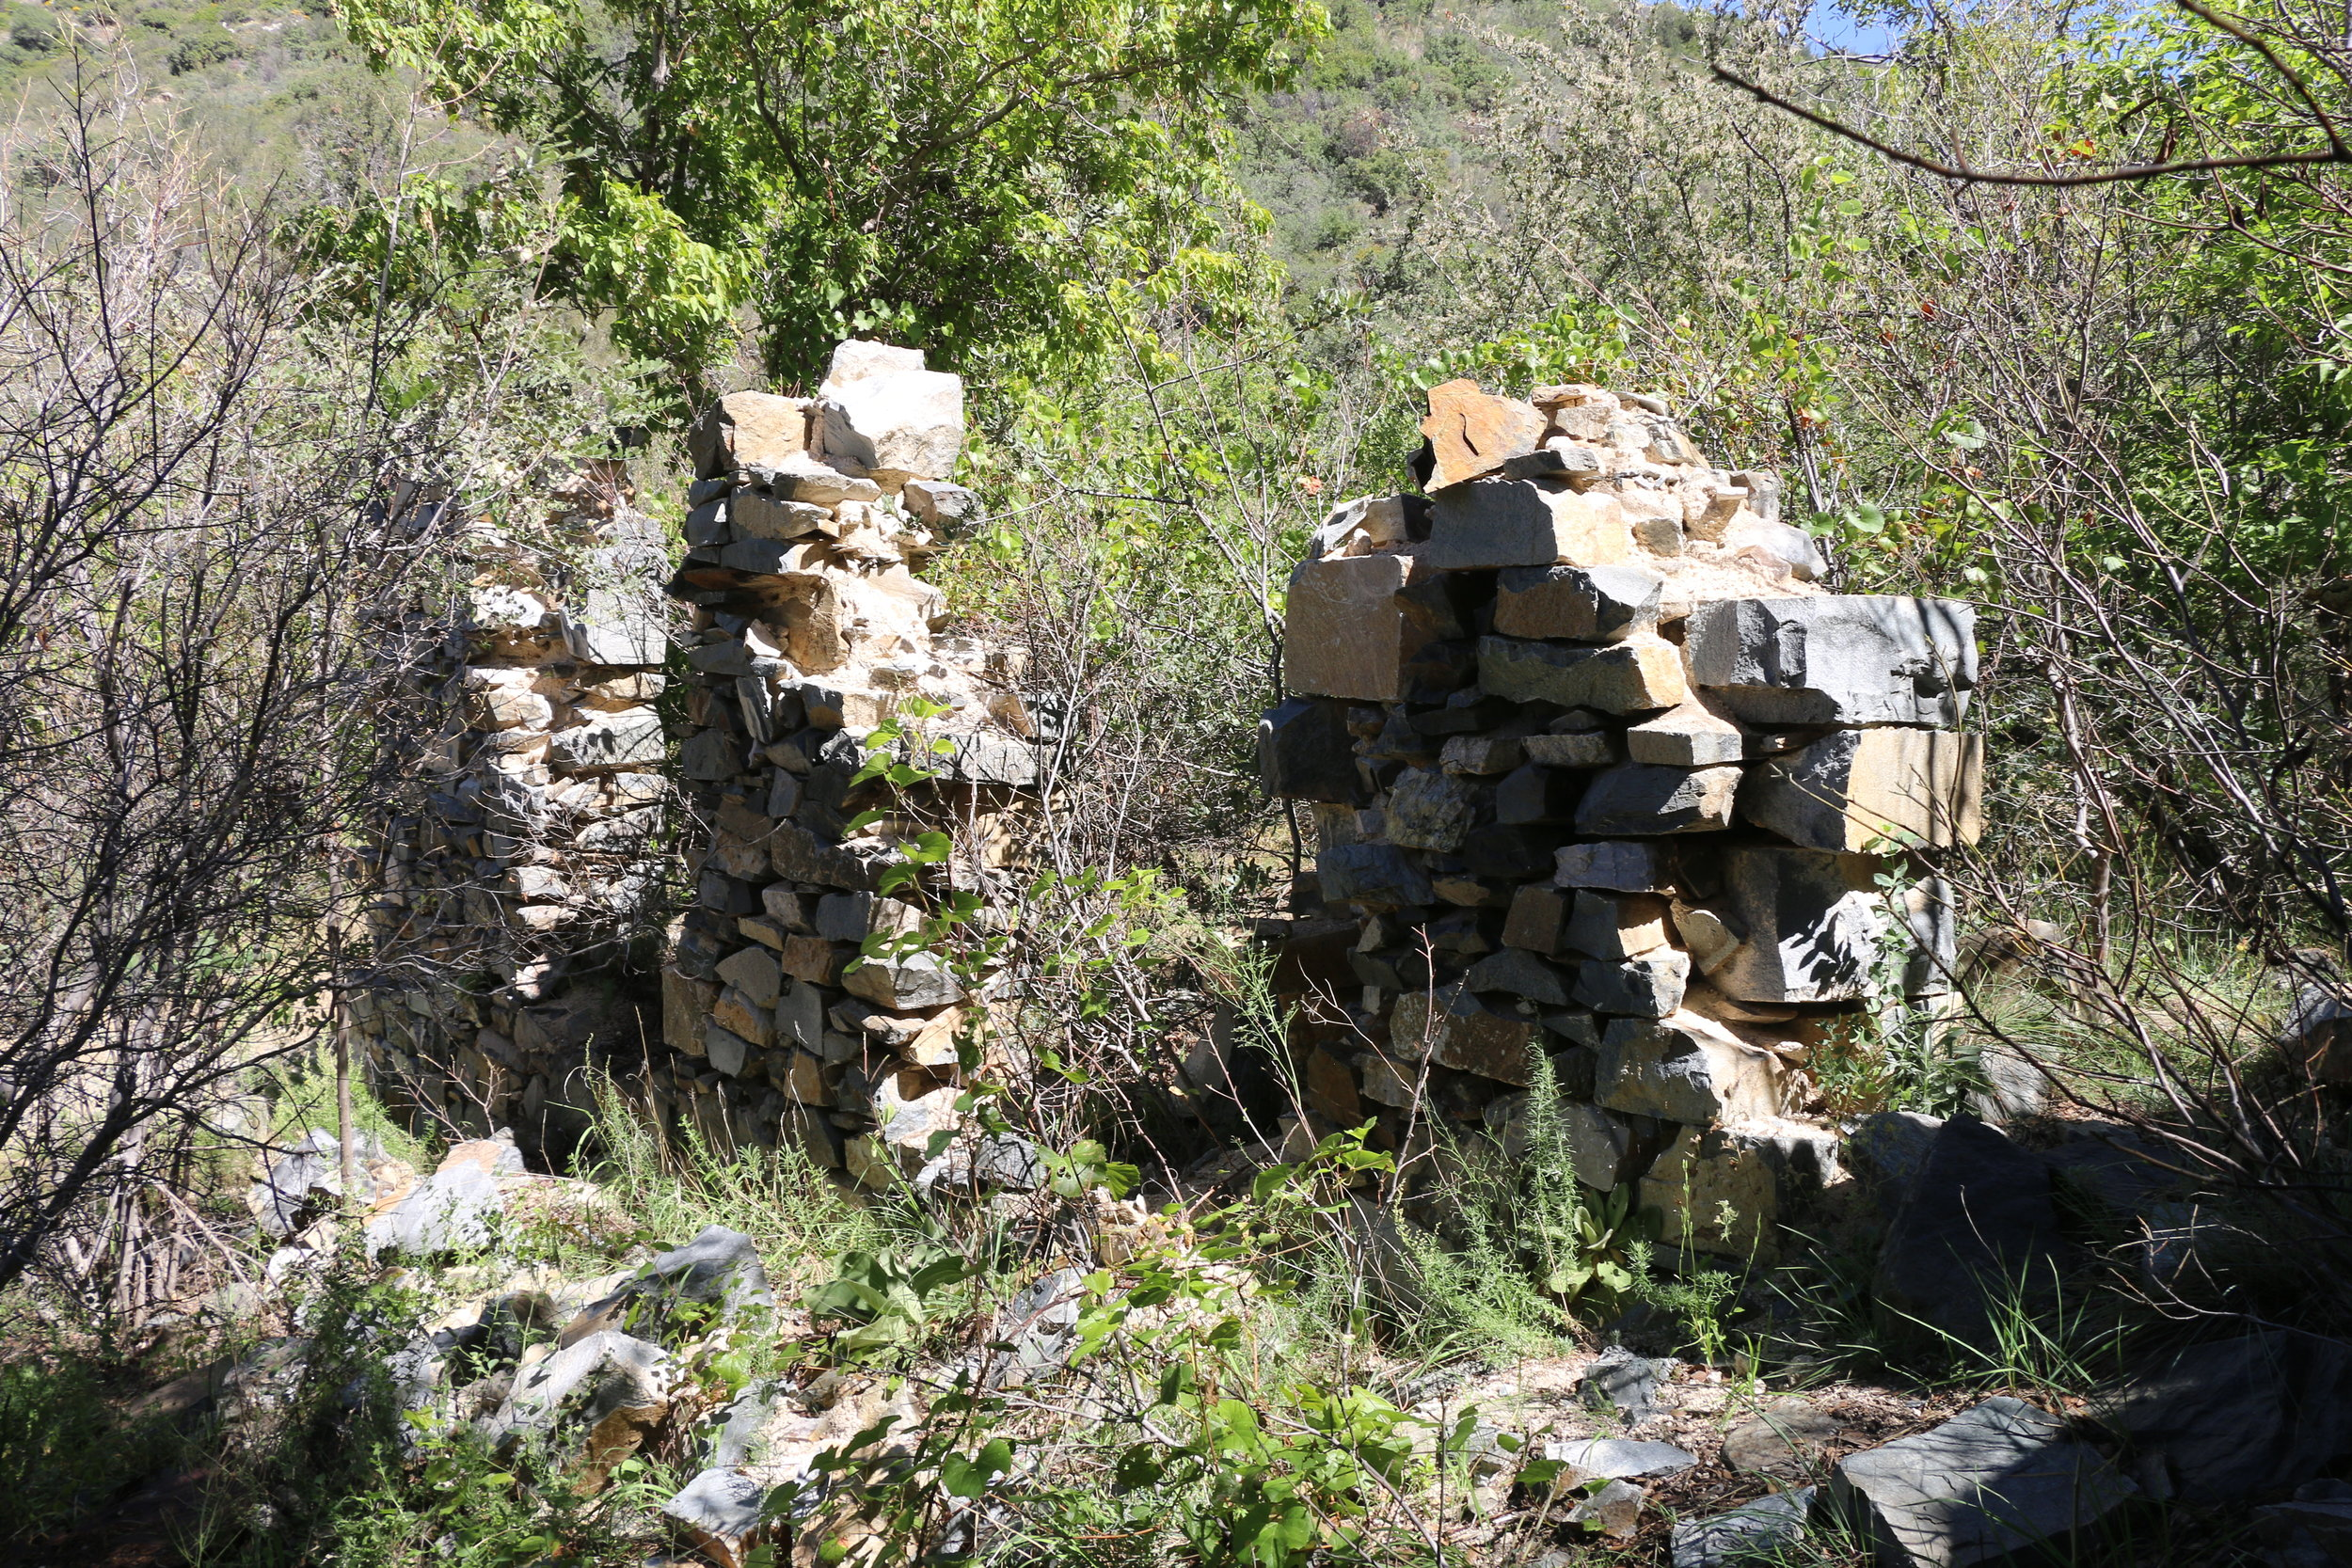 The stone wall of a ruin left at Oro Belle.